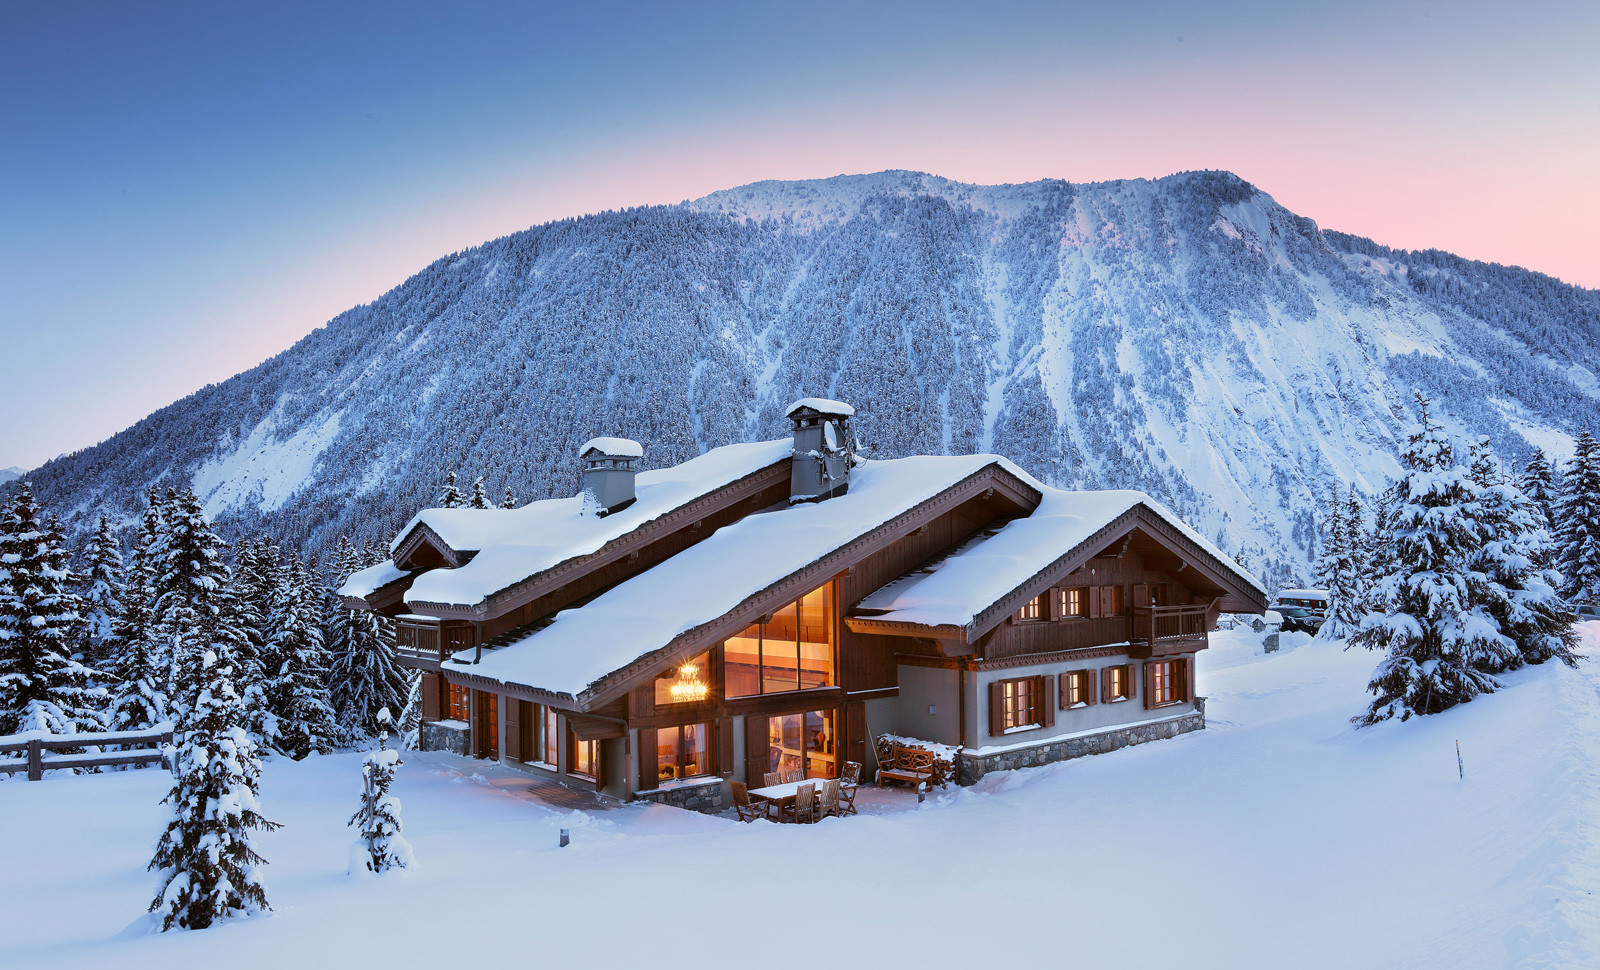 Kings-avenue-courchevel-jacuzzi-hammam-childfriendly-parking-boot-heaters-fireplace-ski-in-ski-out-gardens-area-courchevel-003